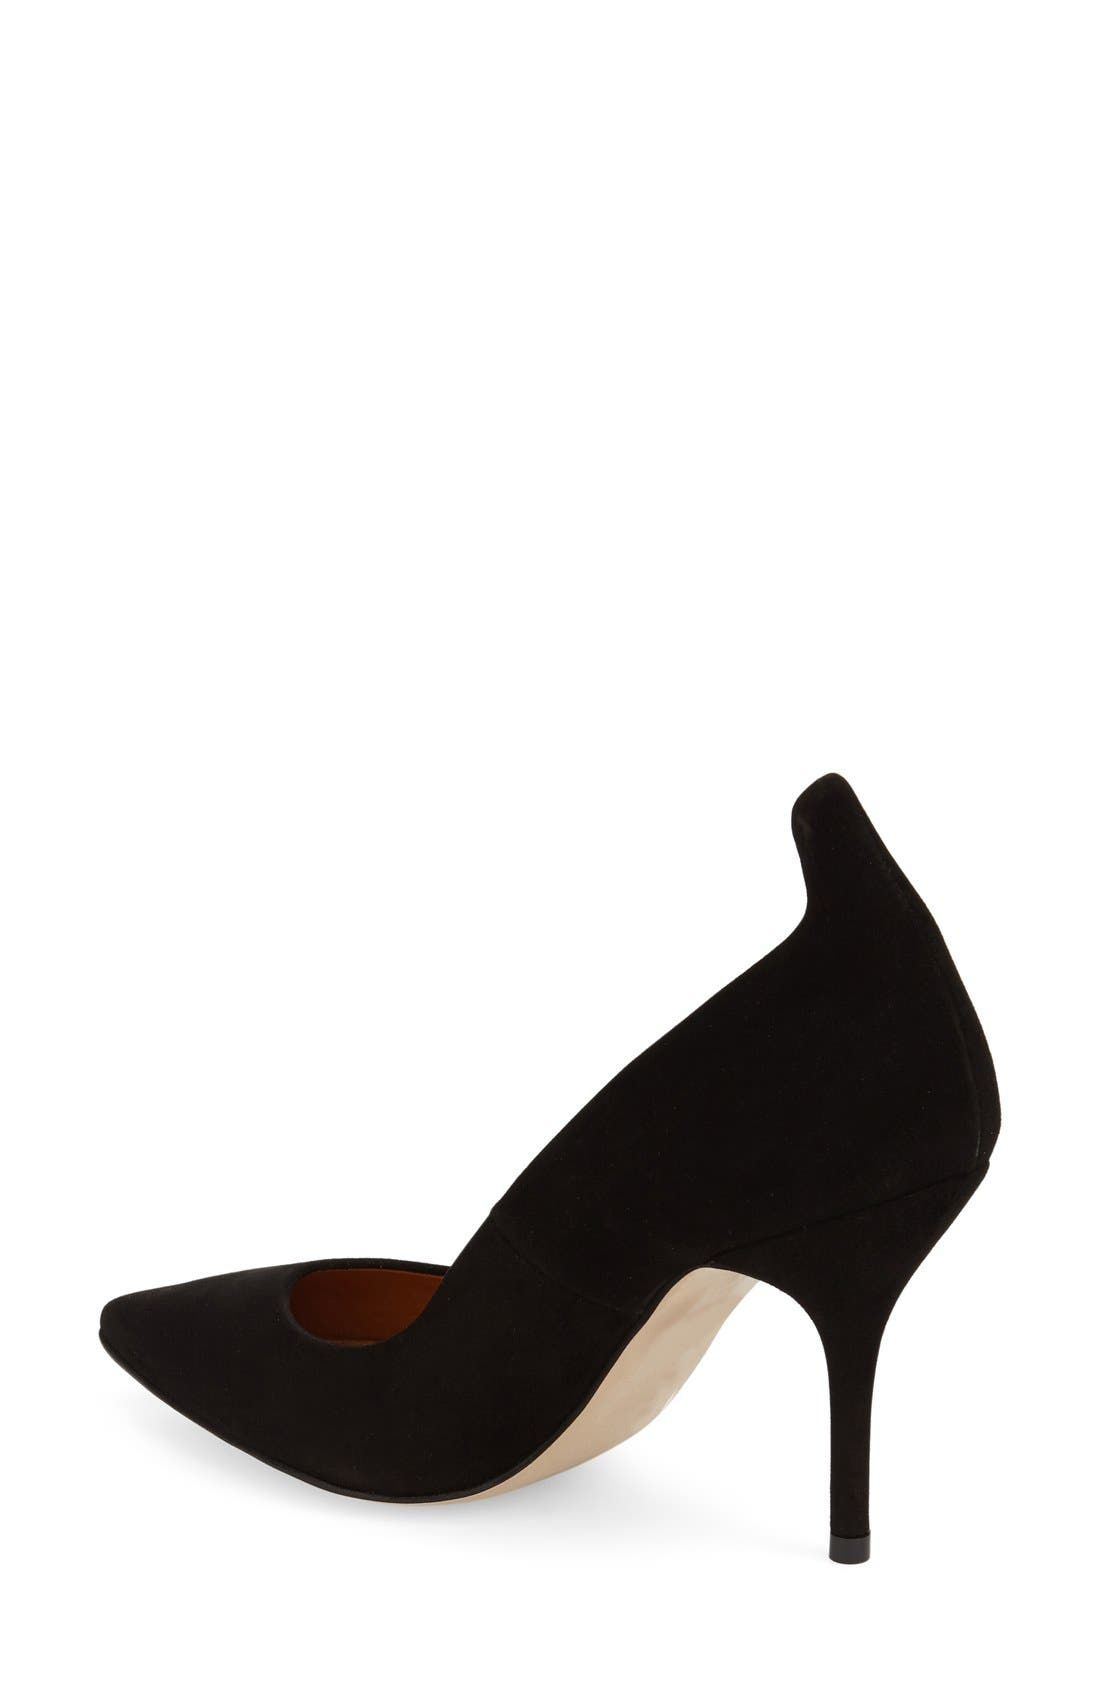 'Giddy' Pointy Toe Pump,                             Alternate thumbnail 2, color,                             Black